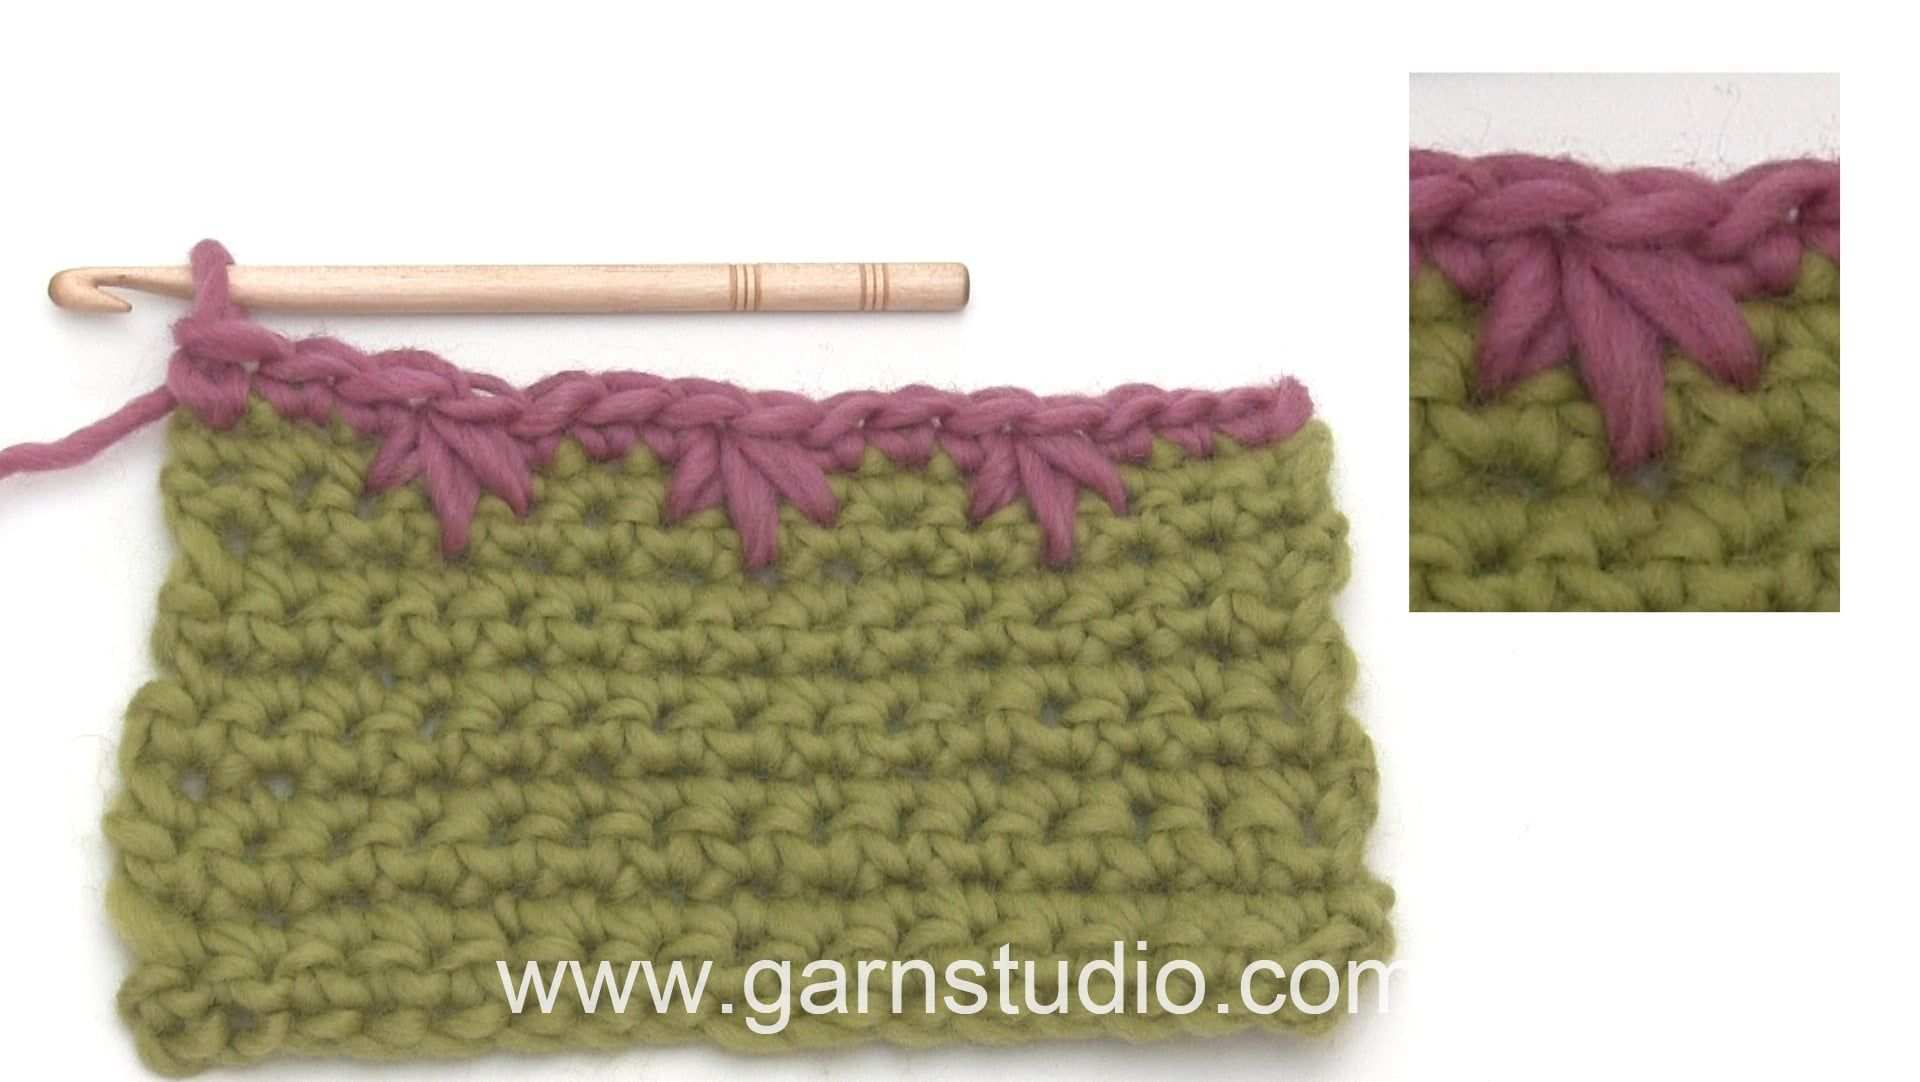 How To Crochet A Simple But Nice Edge With Buttonhole Stitches Strickmuster Loop Hakeln